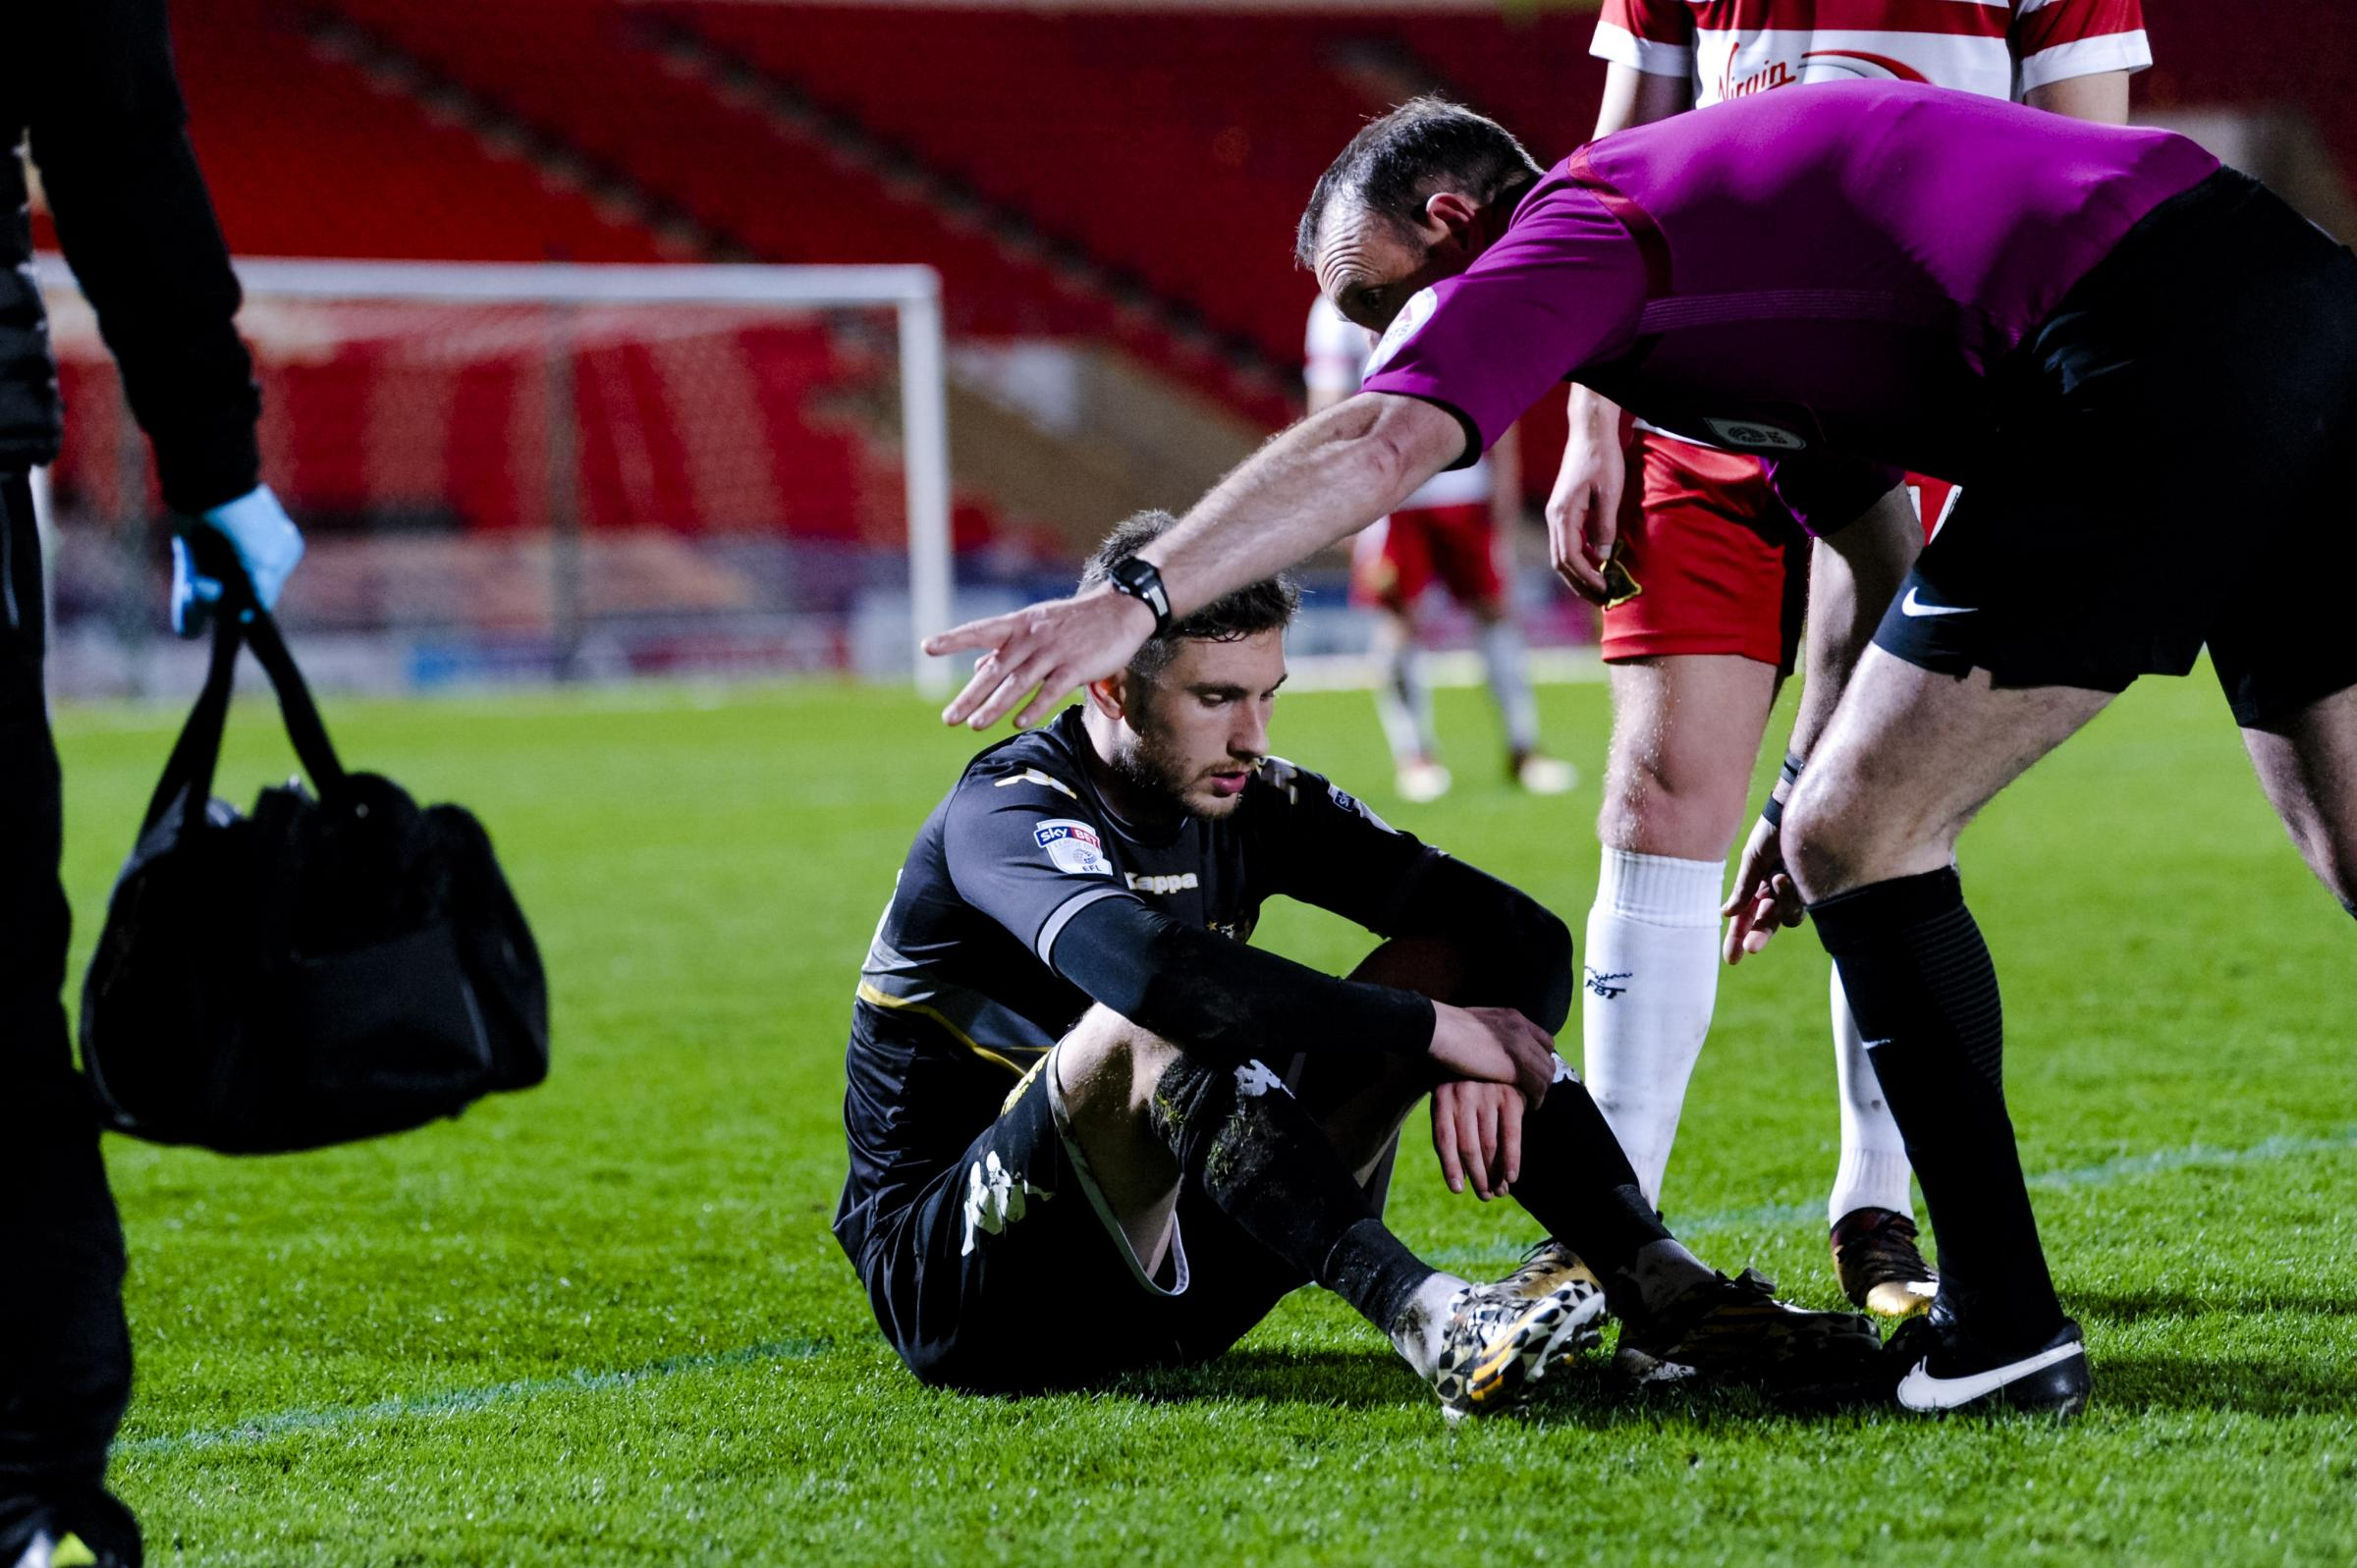 GLUM: Danny Mayor sums up Bury's season as he sits injured at Doncaster on Tuesday night. Picture by Andy Whitehead